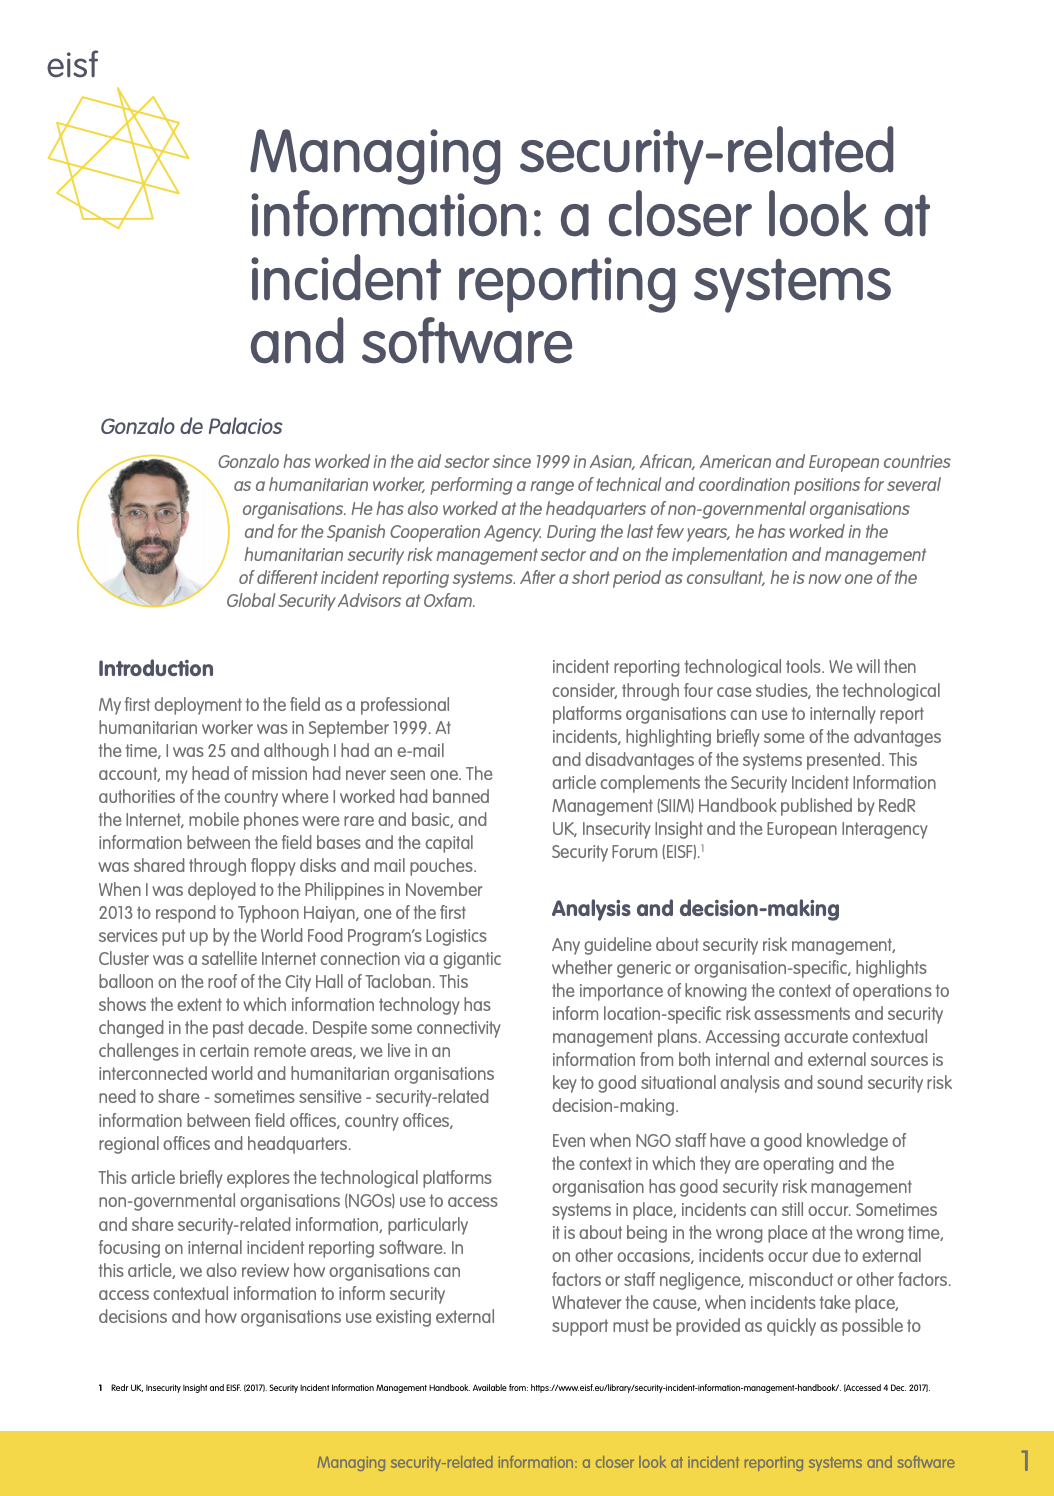 Managing security-related information: a closer look at incident reporting systems and software